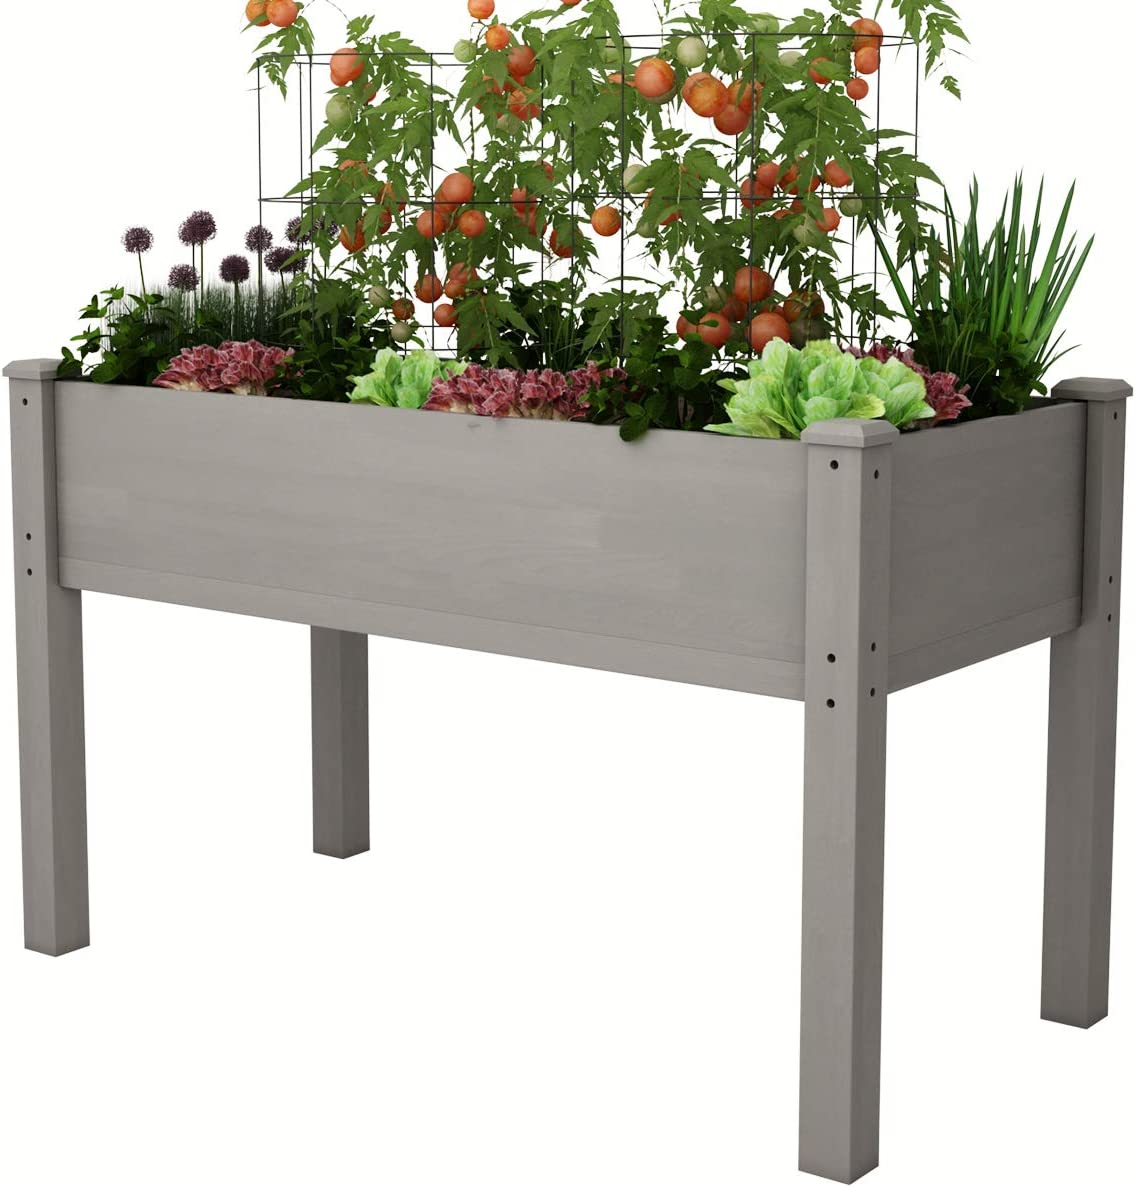 "AMZFINE Heavy Duty Wooden Raised Garden Bed Kit, Solid Wood Elevated Planter Box -48"" L x 24"" W x 30"" H, Grey"